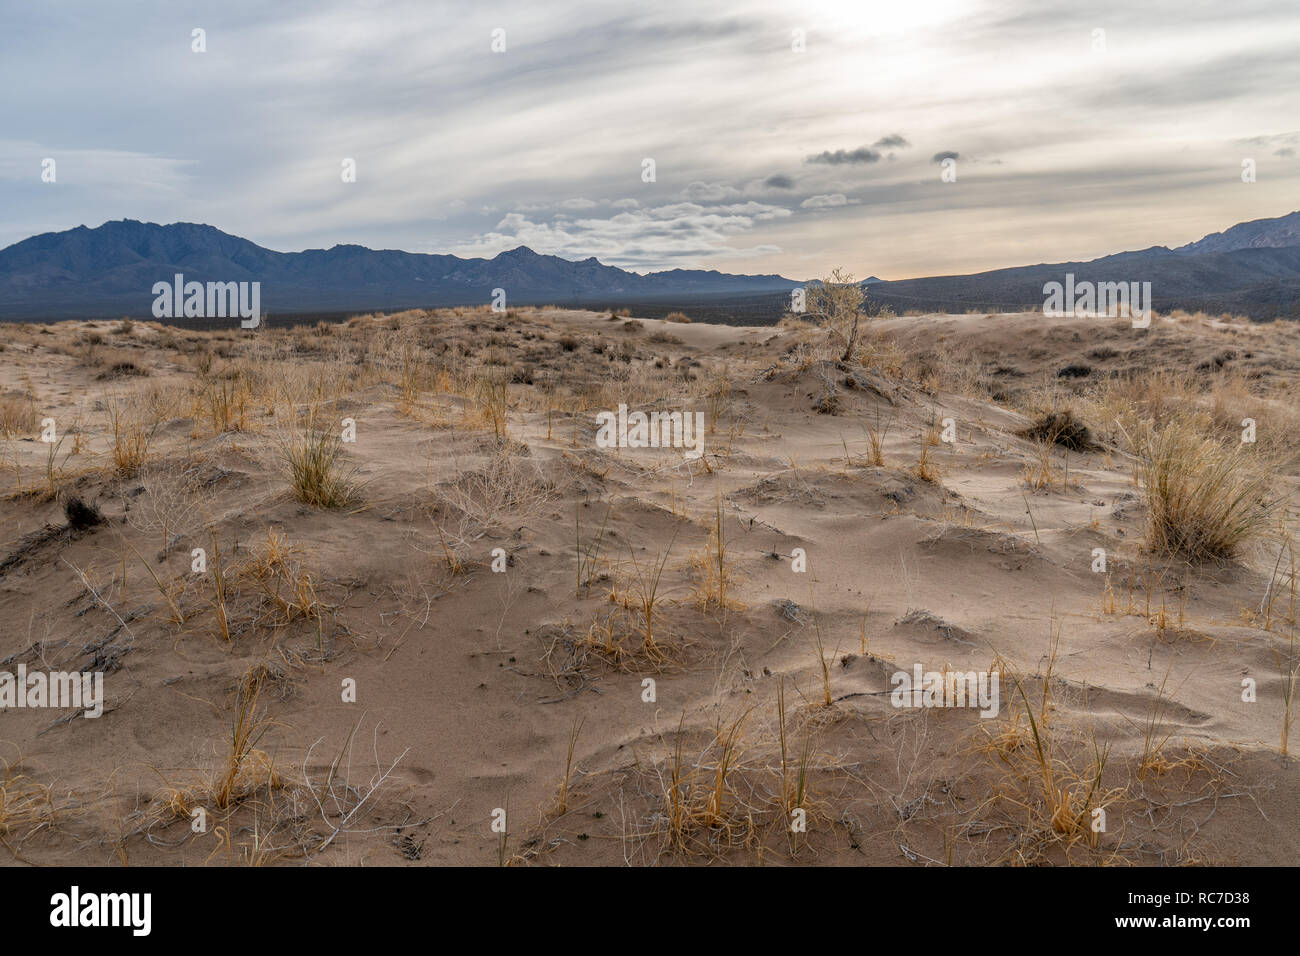 Plants roots holding on to sand creating little mounds around themselves, Kelso Dunes, Mojave National Preserve, California Stock Photo